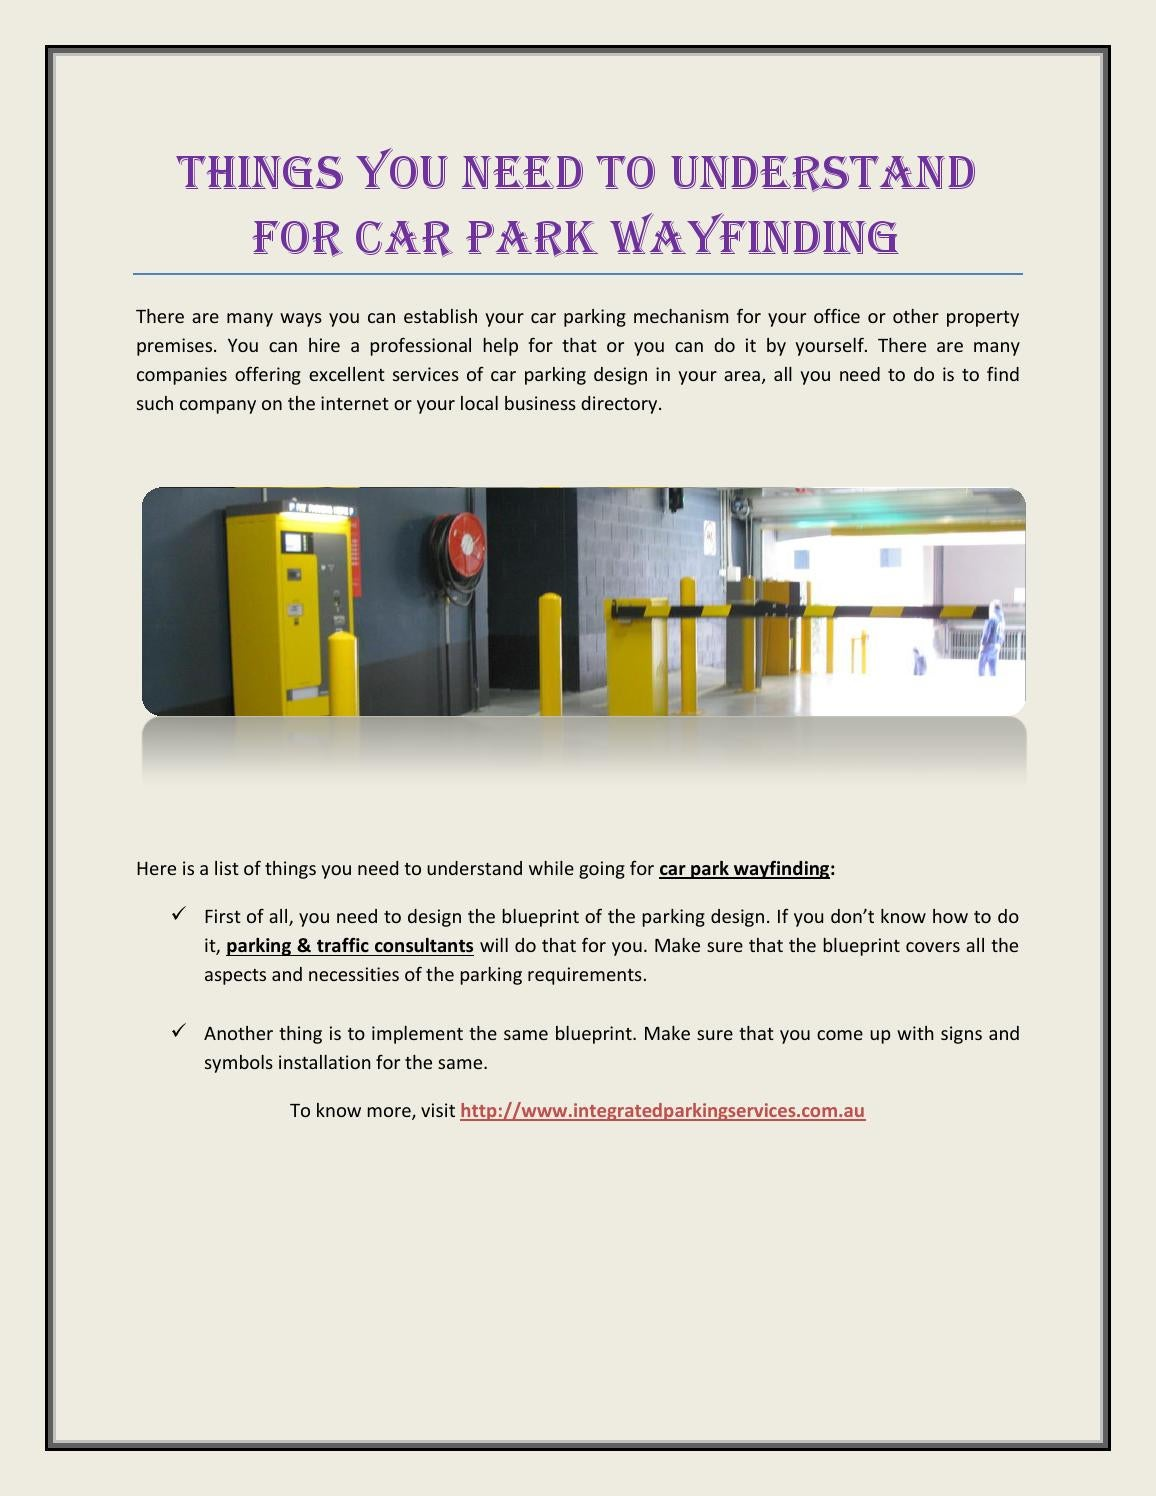 Things you need to understand for car park wayfinding by things you need to understand for car park wayfinding by parkingservices issuu malvernweather Image collections